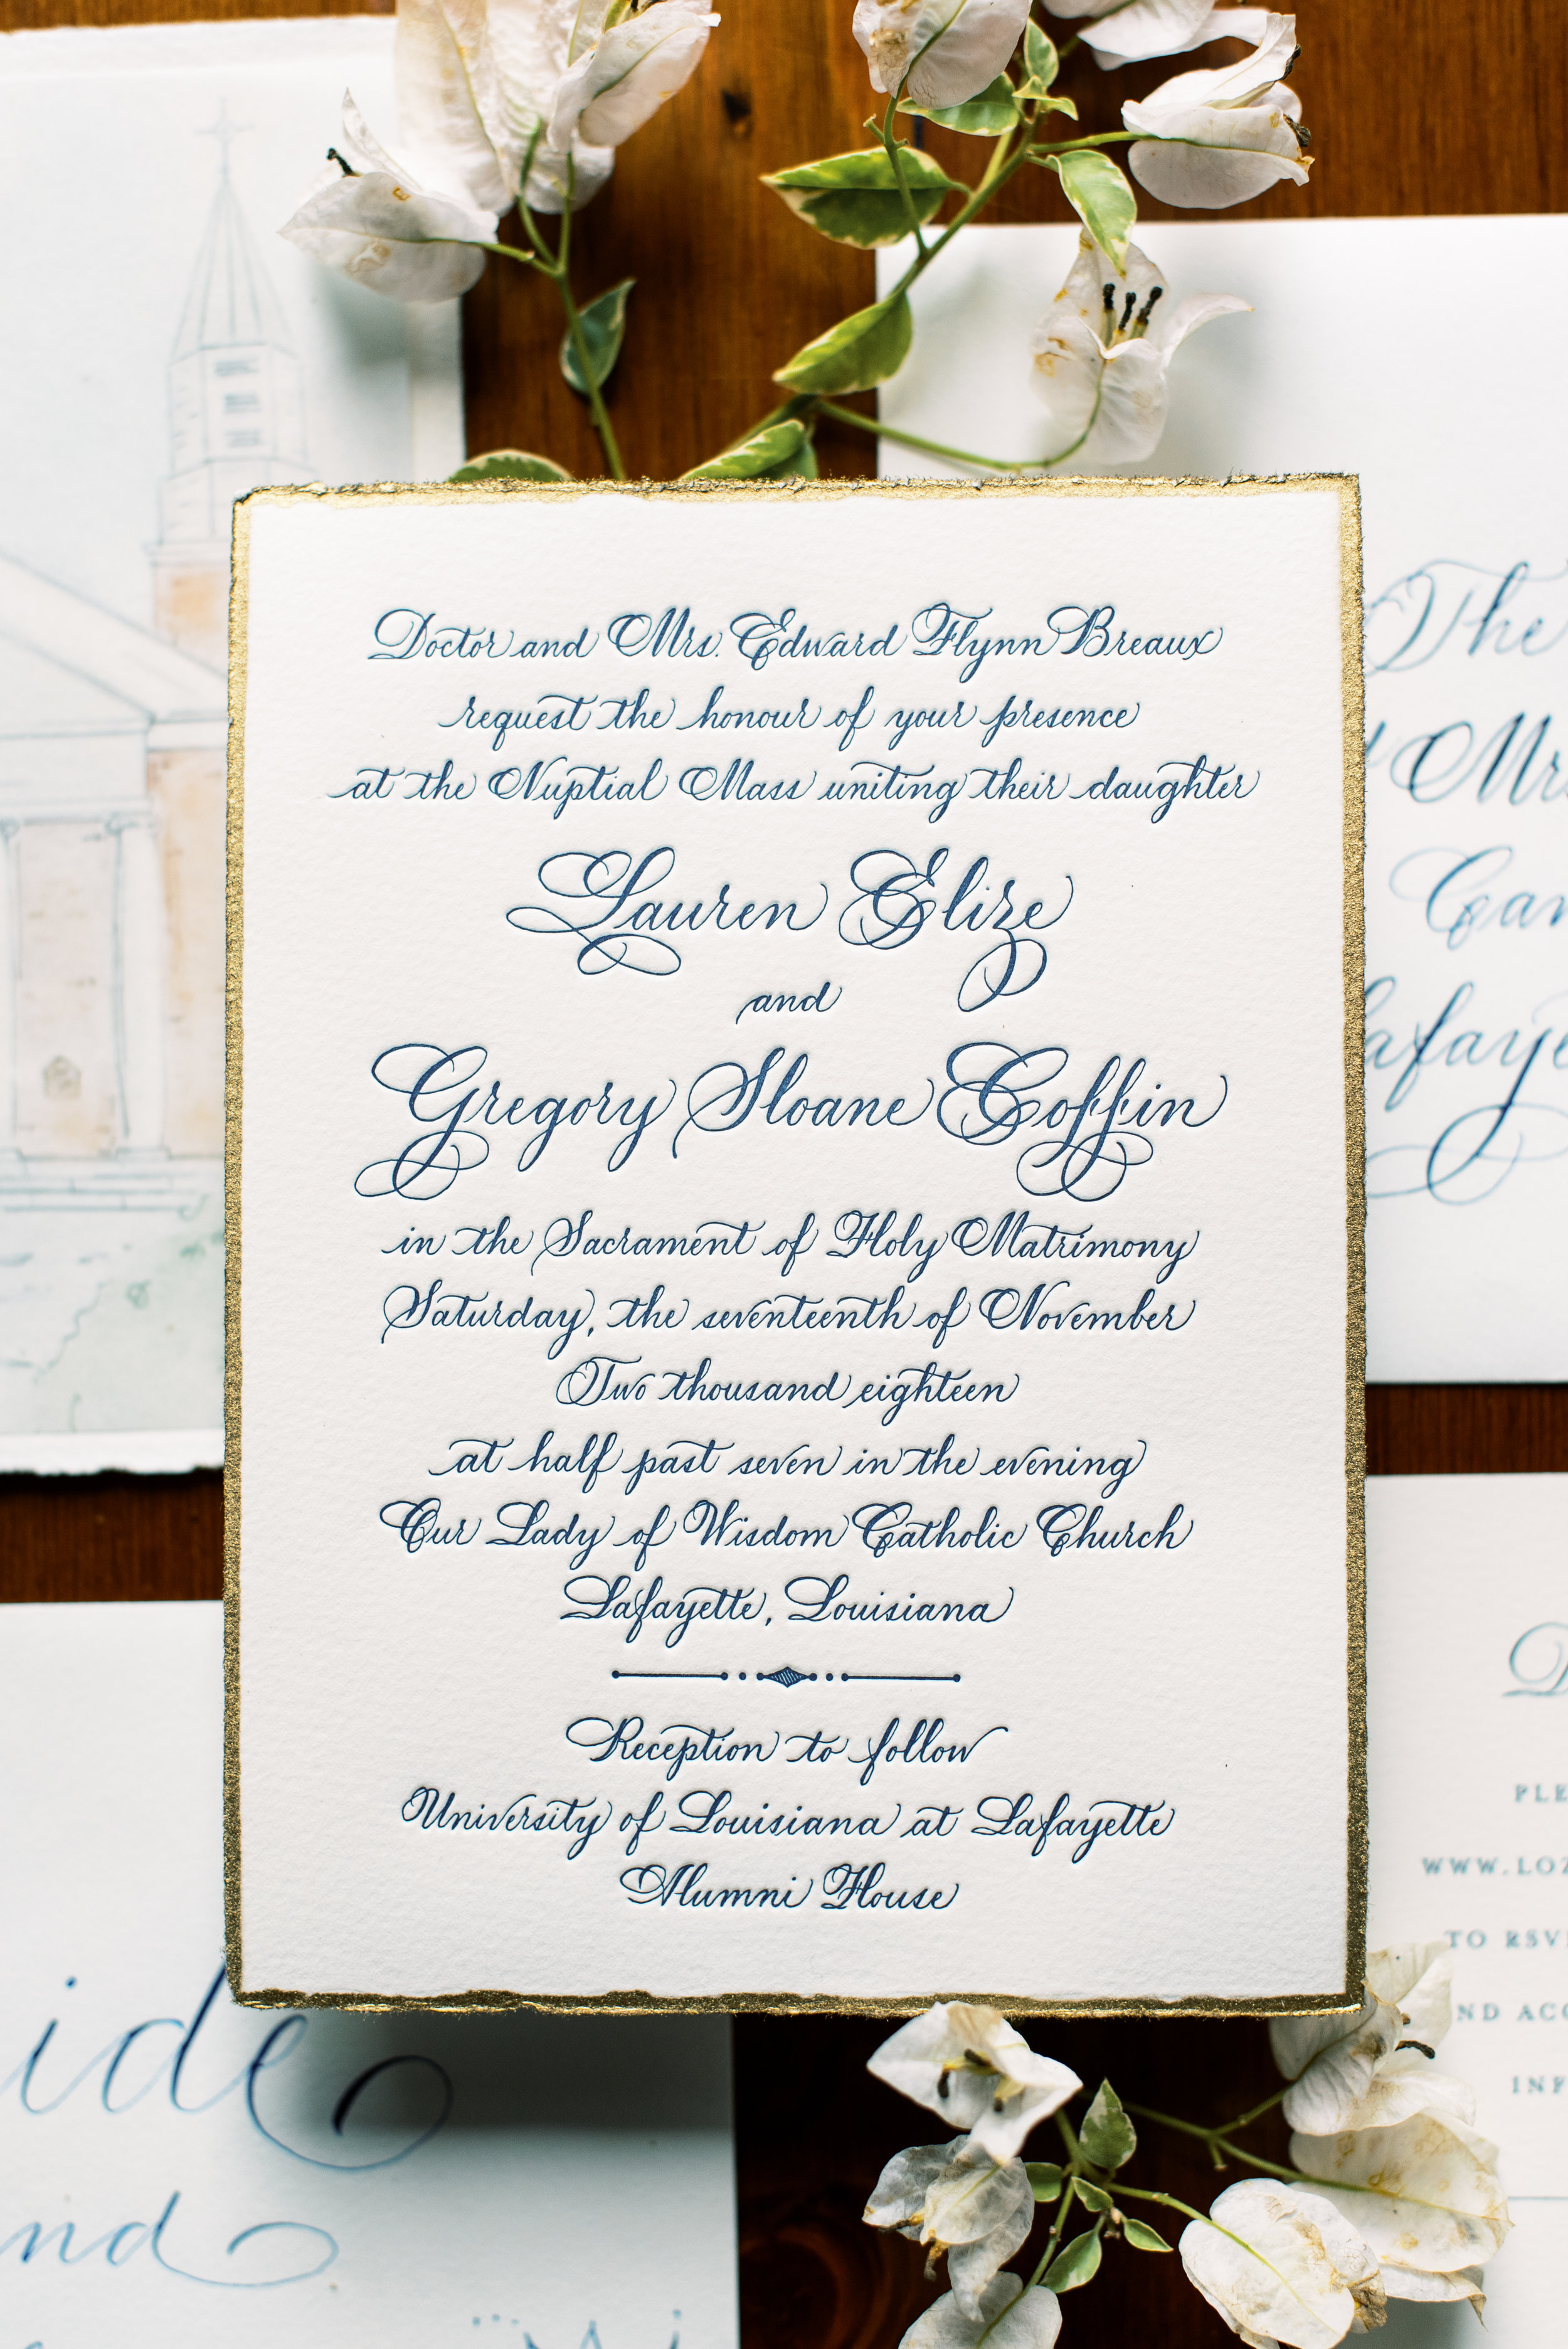 Southern Fete, Southern Wedding, Save the dates, Invitation Calligraphy, Jan Pruitt, Sarah Beth Photography, Our Lady of Wisdom Church